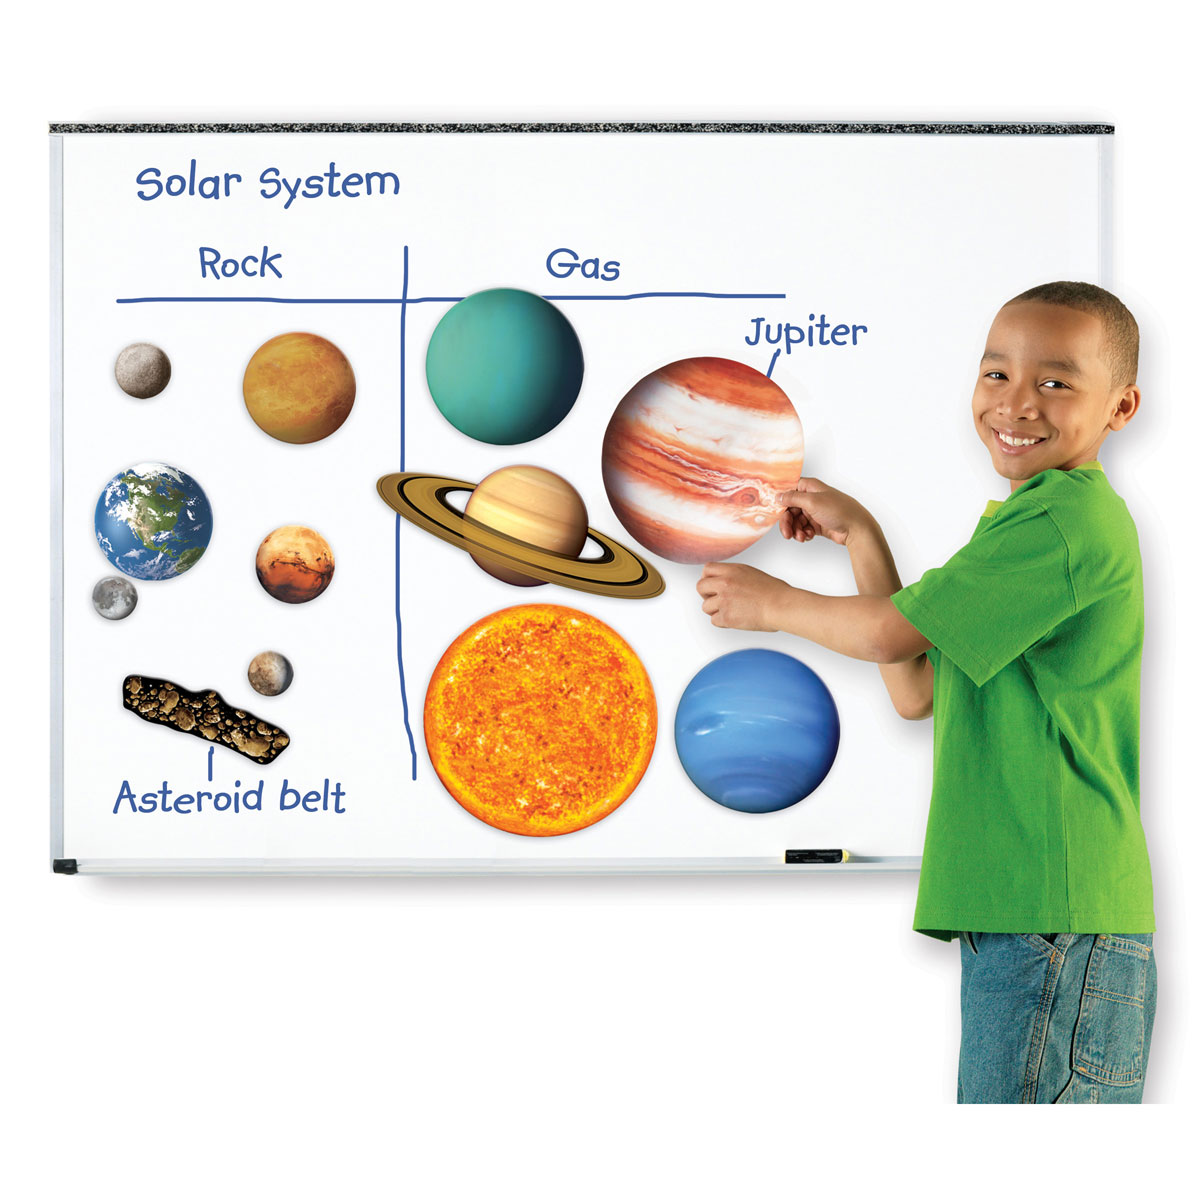 solar system learning - photo #39